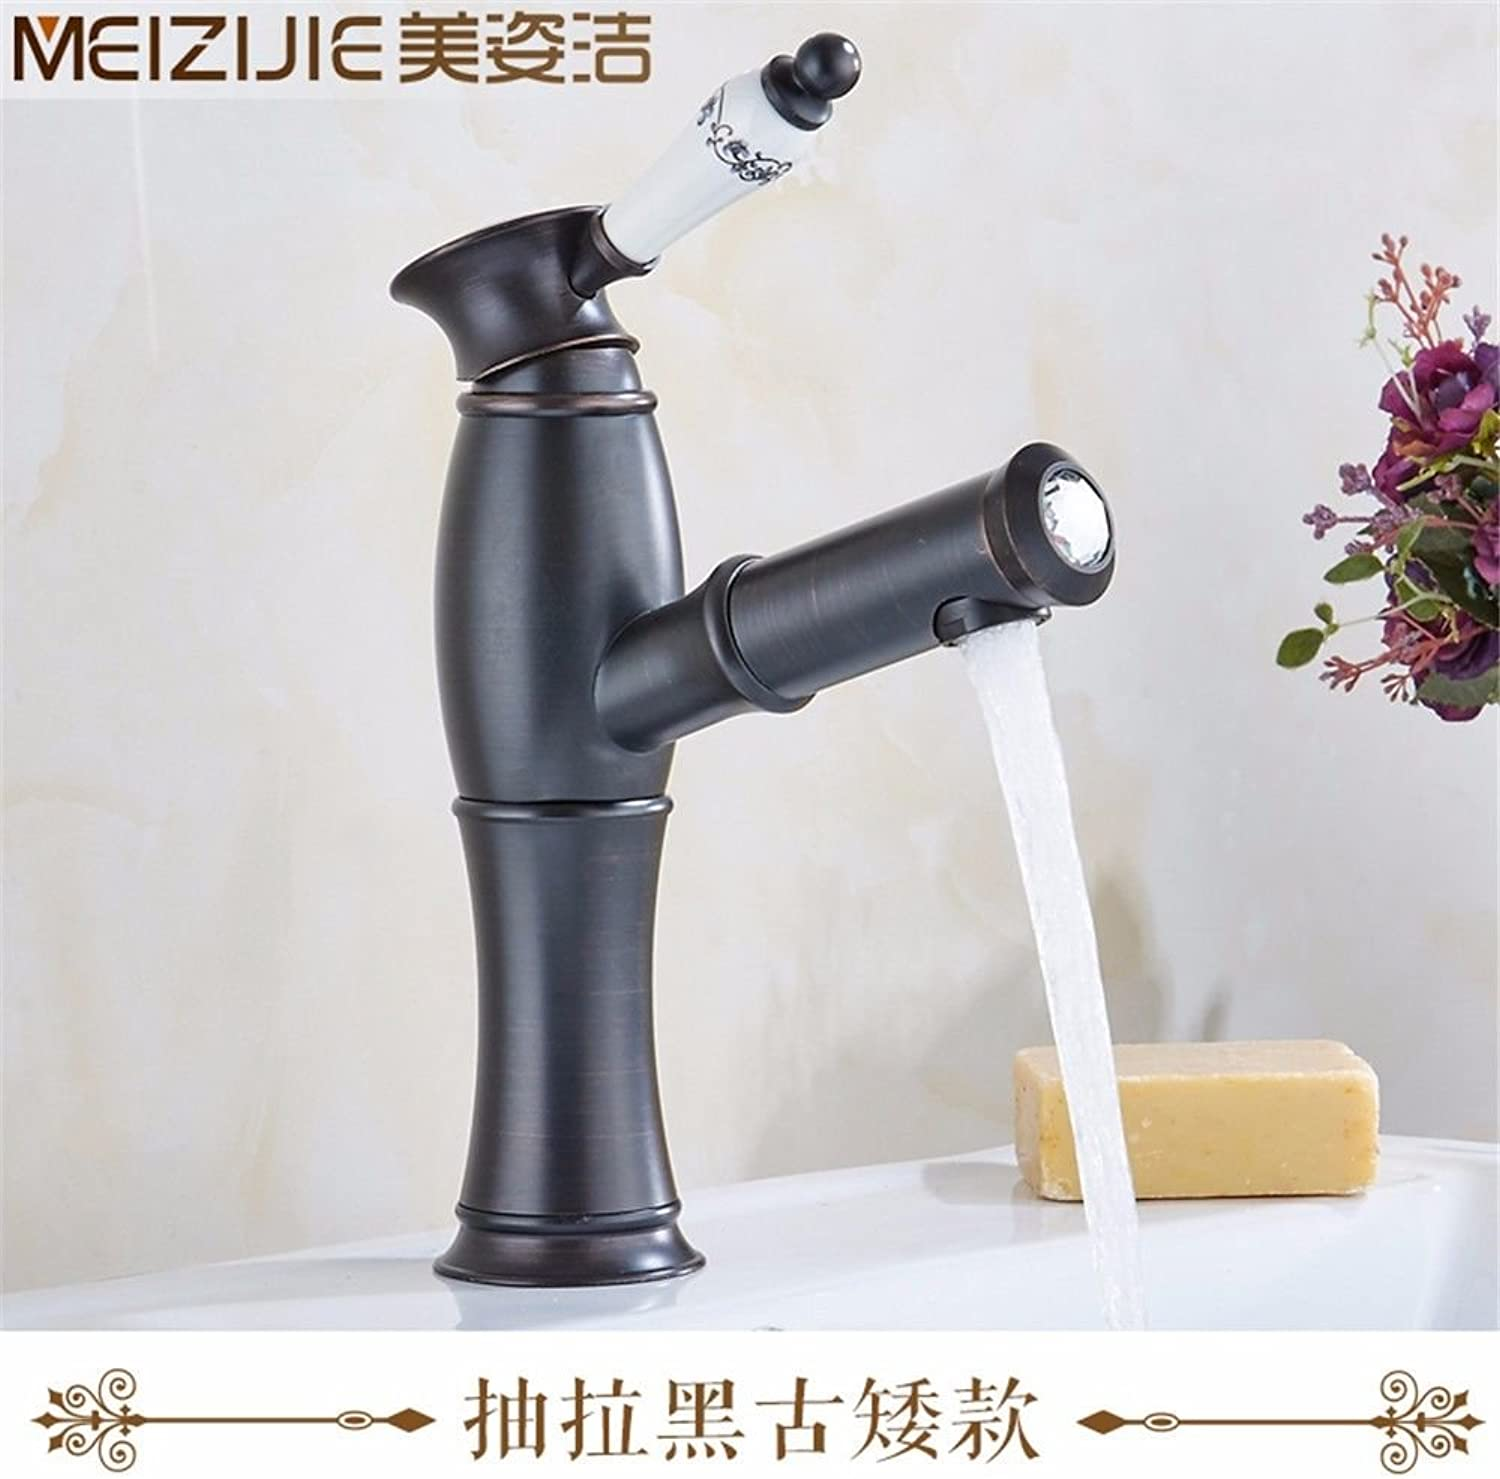 Fbict Antique pullable Basin Faucet Copper washbasin Shampoo hot and Cold Water Faucet on The Counter Basin Faucet?D for Kitchen Bathroom Faucet Bid Tap